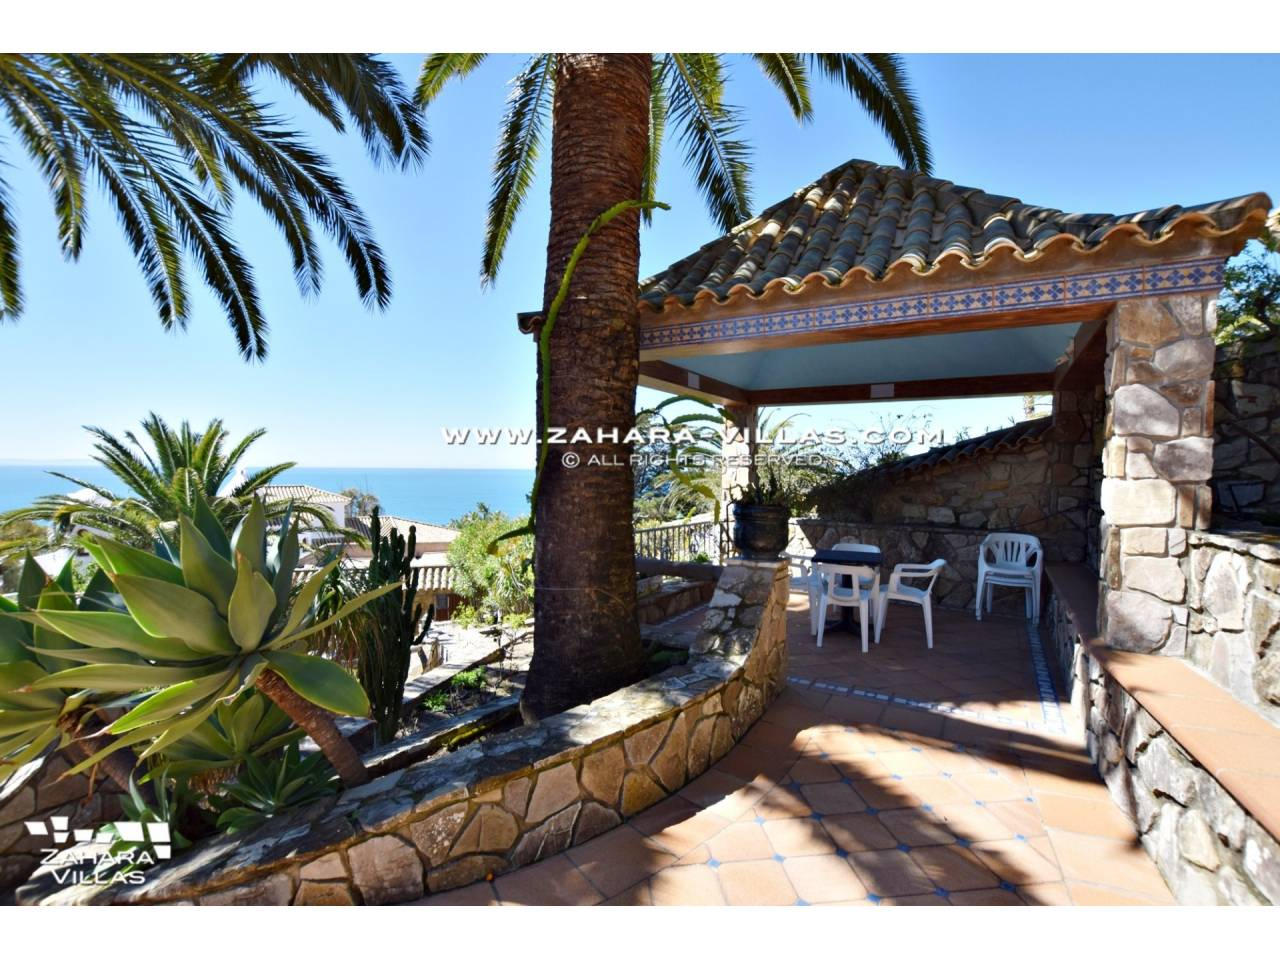 Imagen 3 de Wonderful villa for sale in the upper area of the Atlanterra mountain